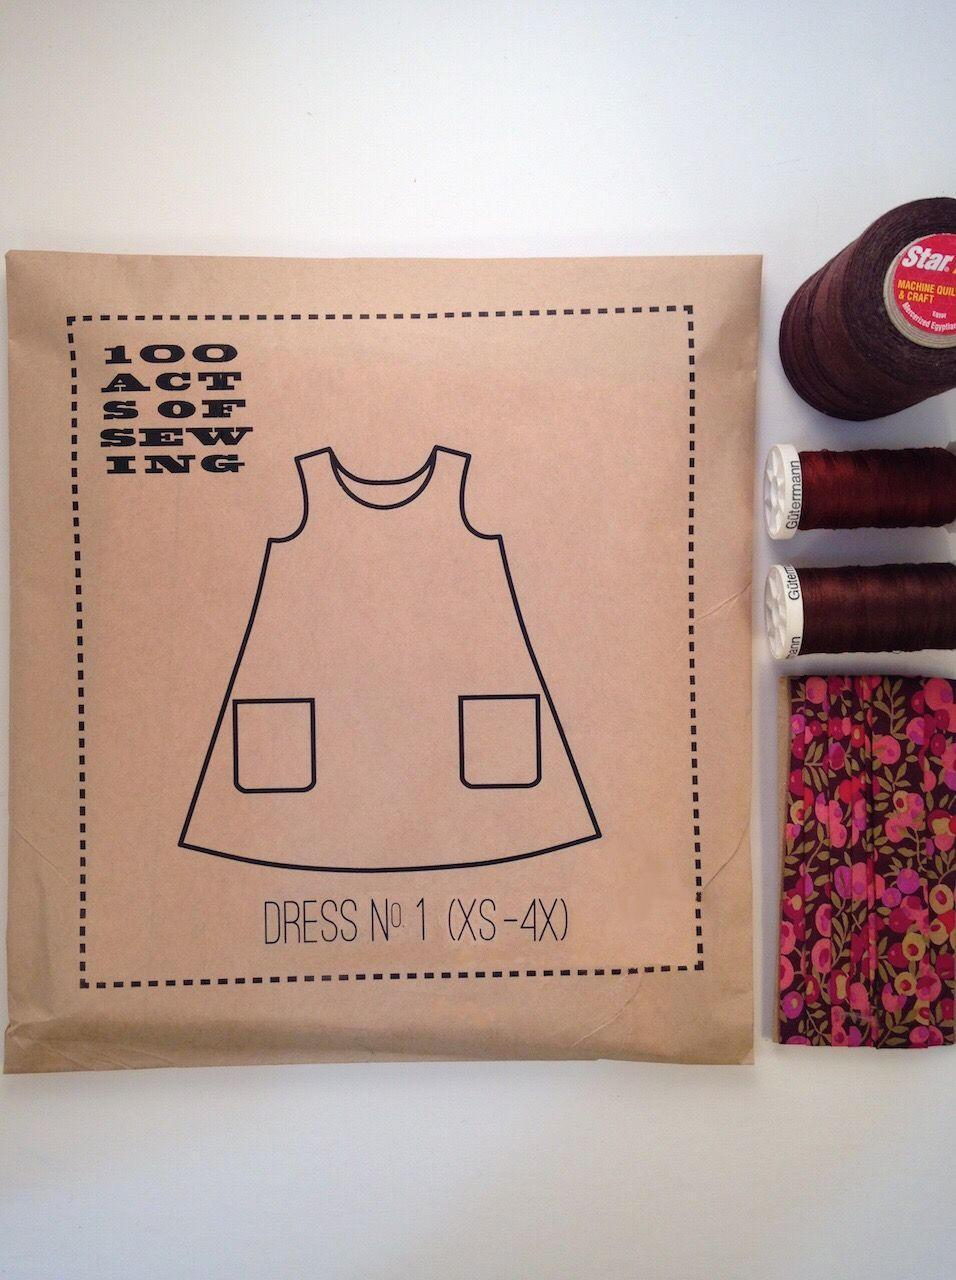 Dress No. 1, 100 Acts of Sewing Pattern.